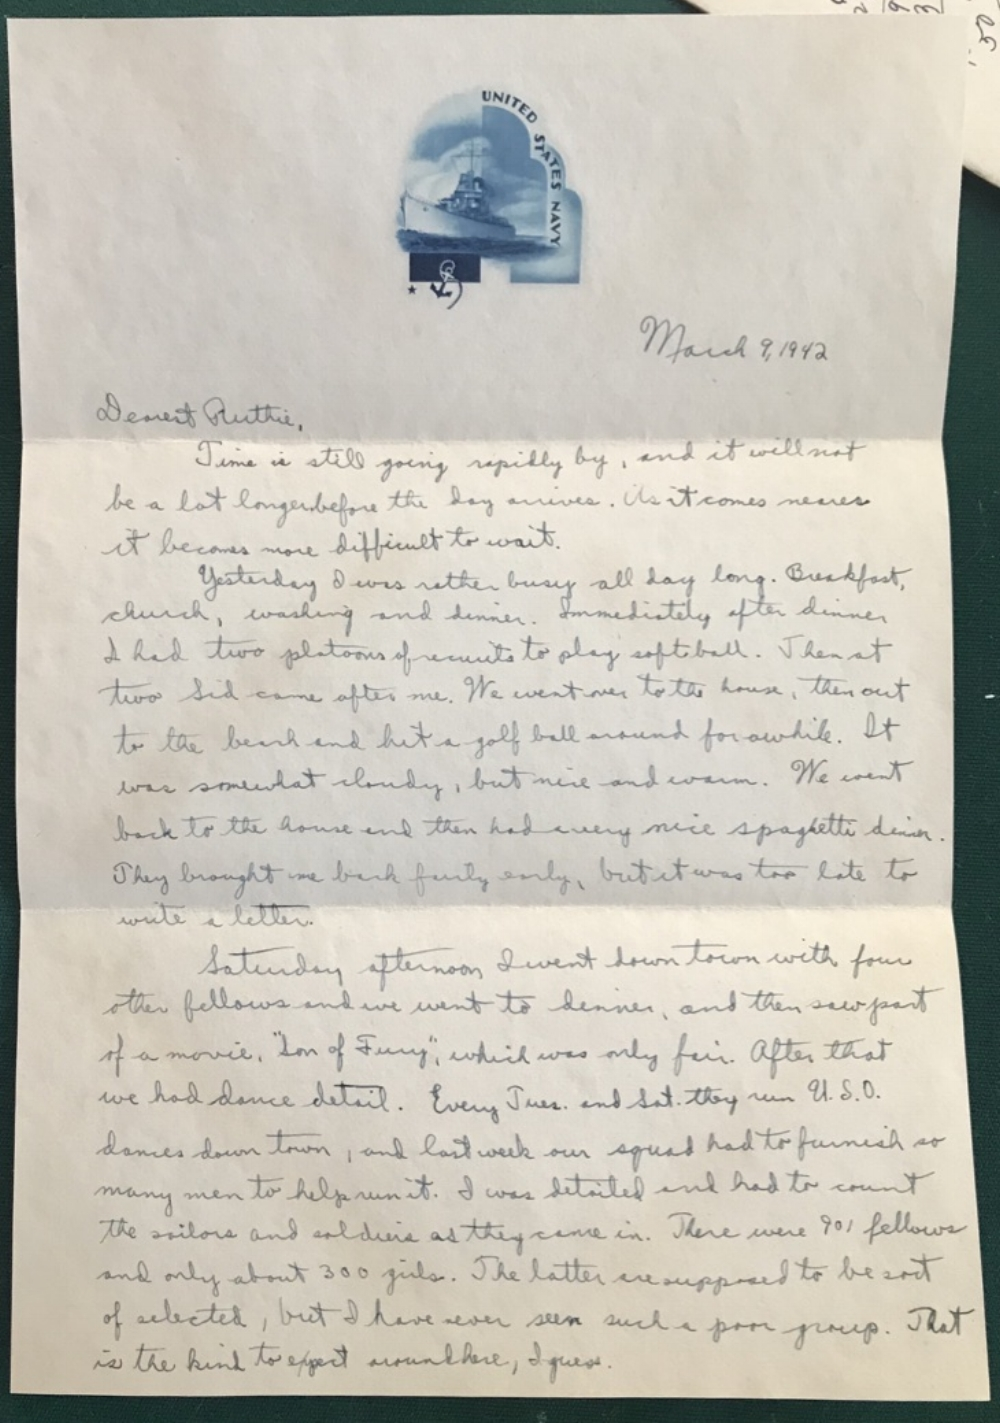 March 9, 1942 letter from Lansing Bicknell to his wife, Ruth Terry Bicknell